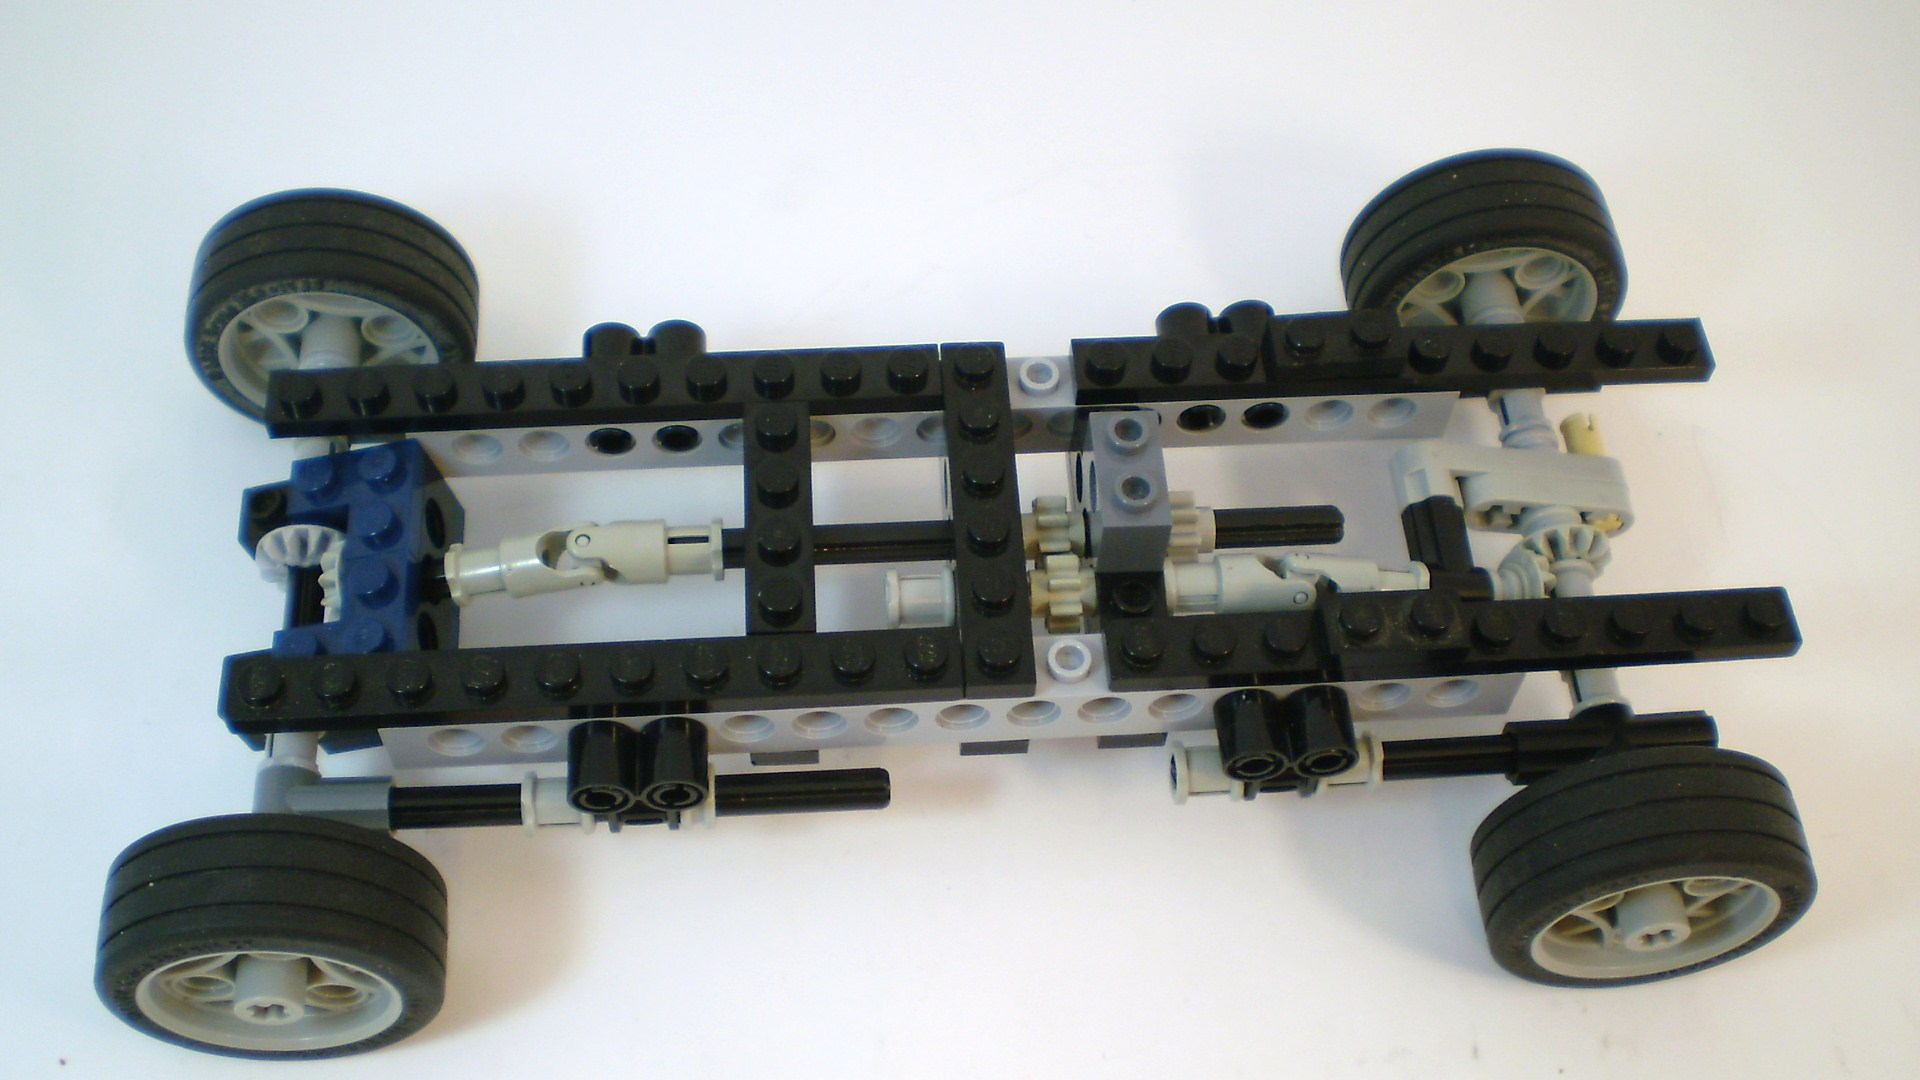 f-series_2009_engine_and_chassis_08.jpg